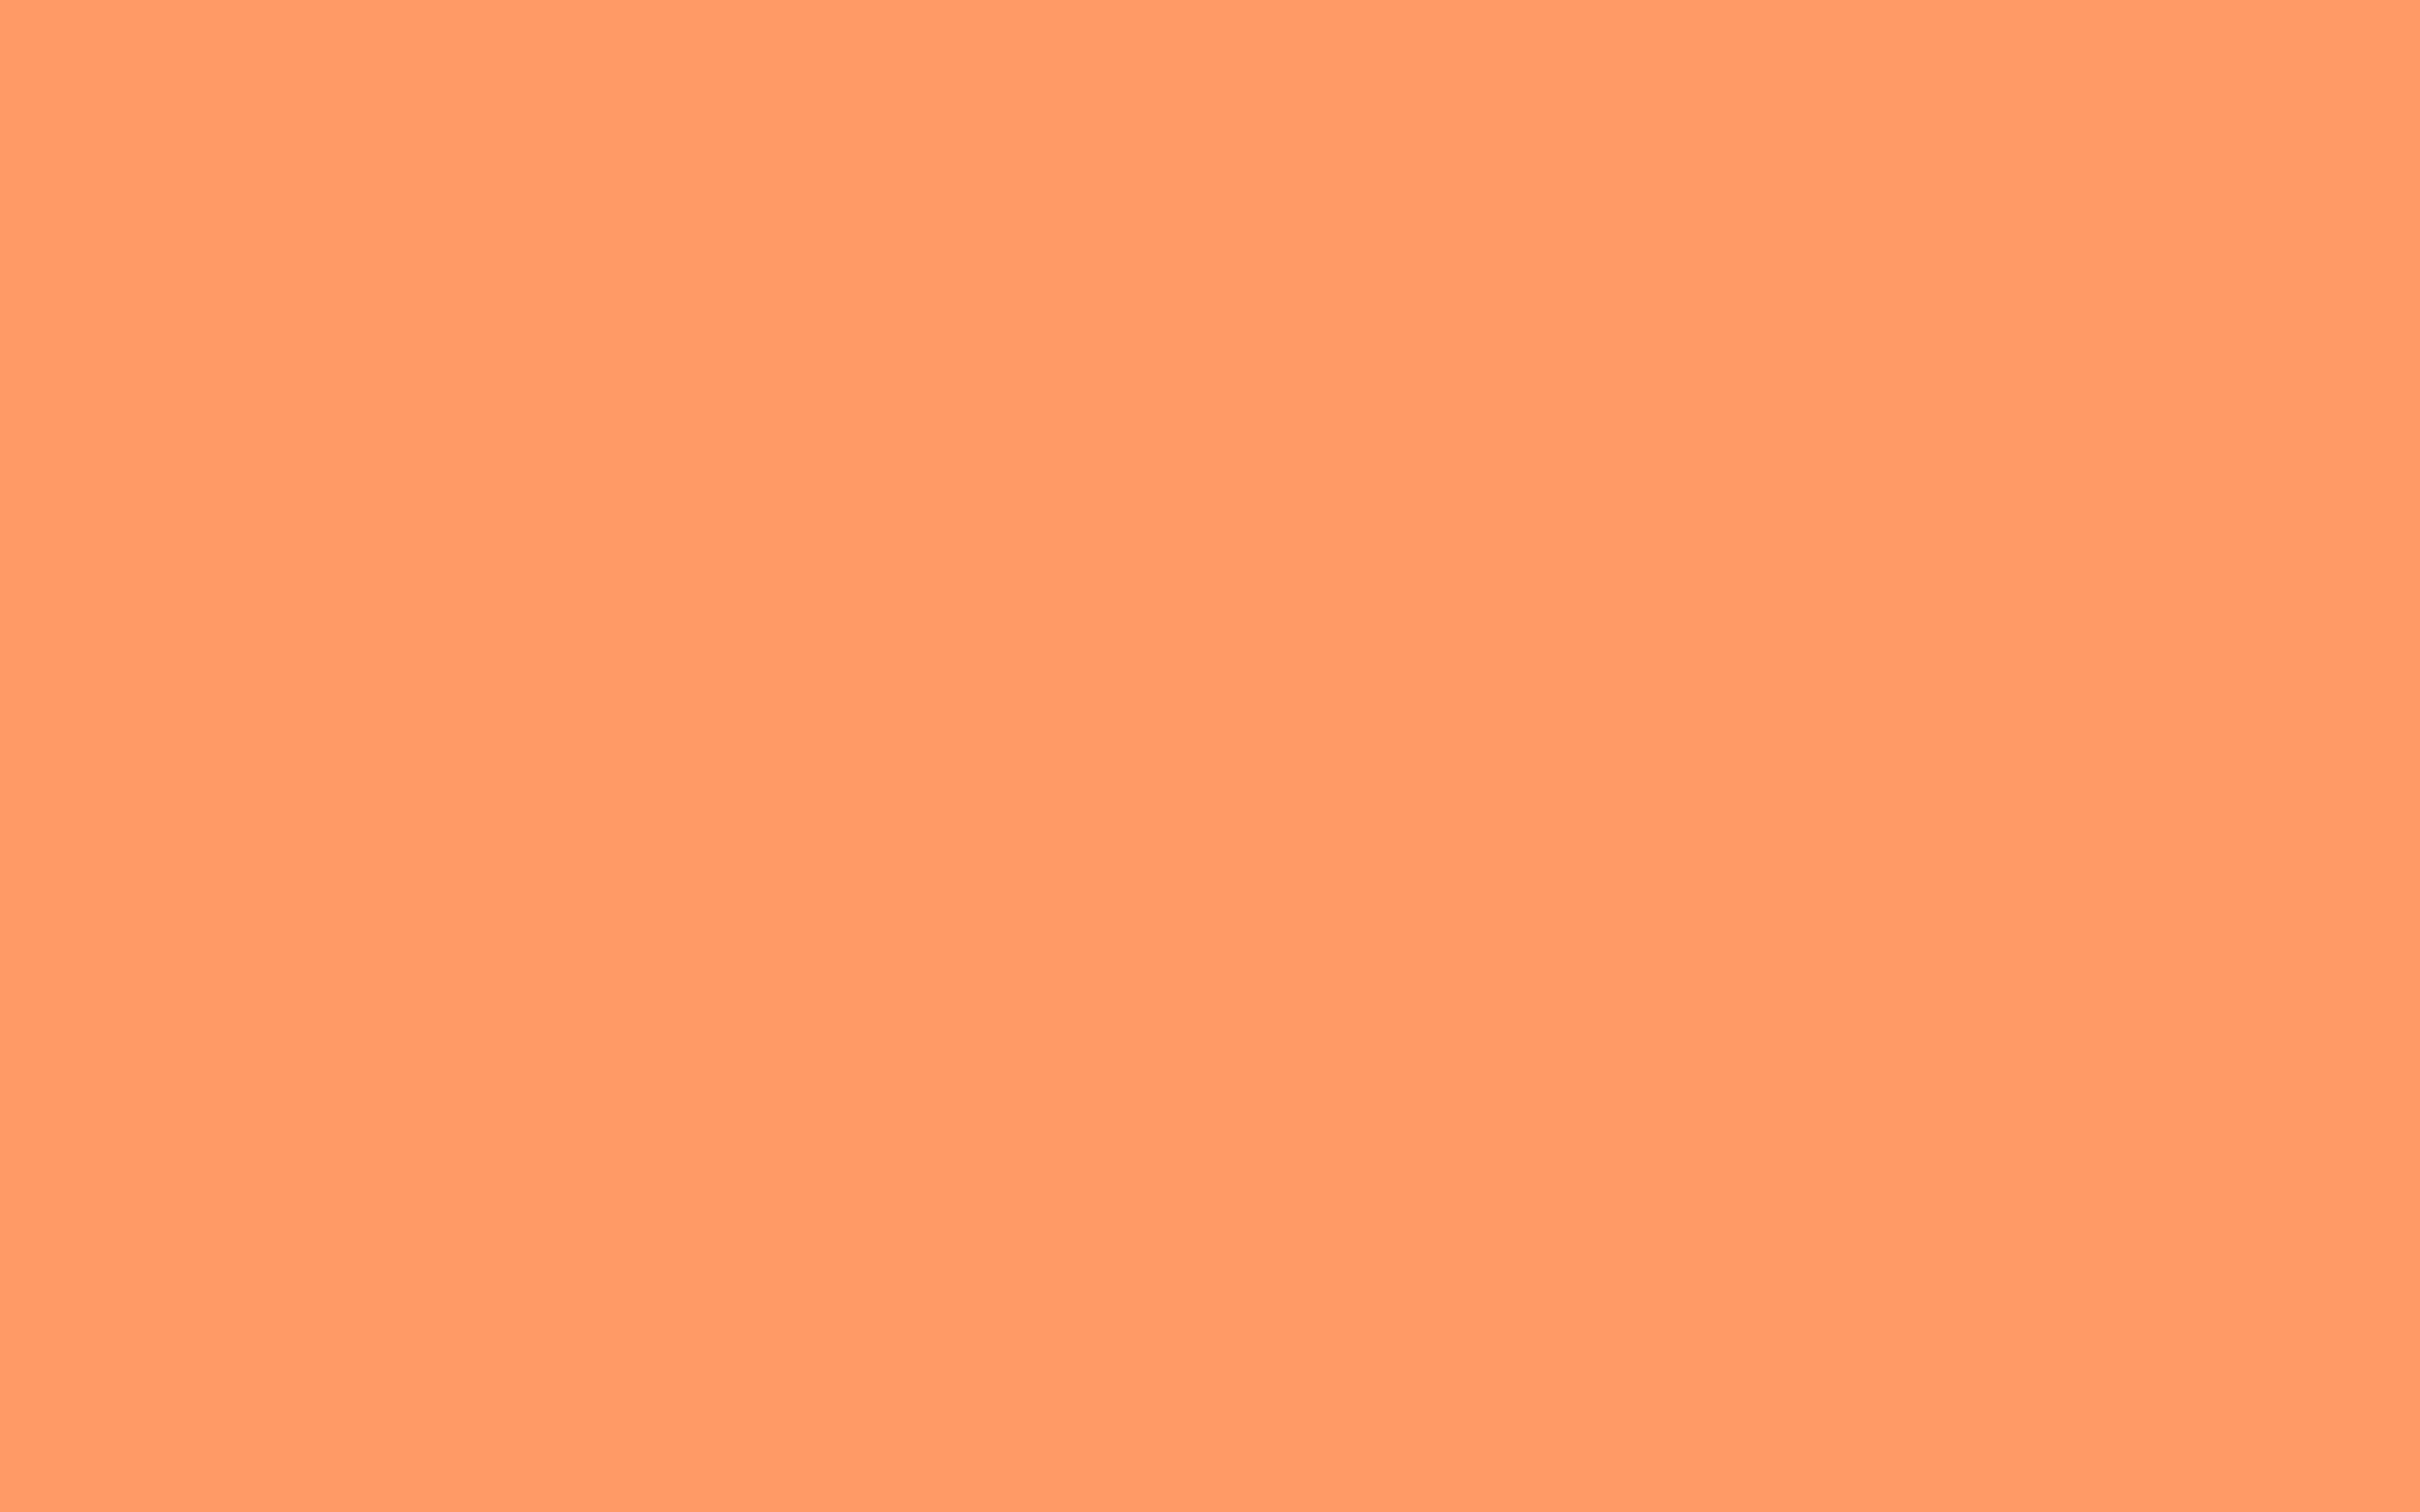 2880x1800 Atomic Tangerine Solid Color Background